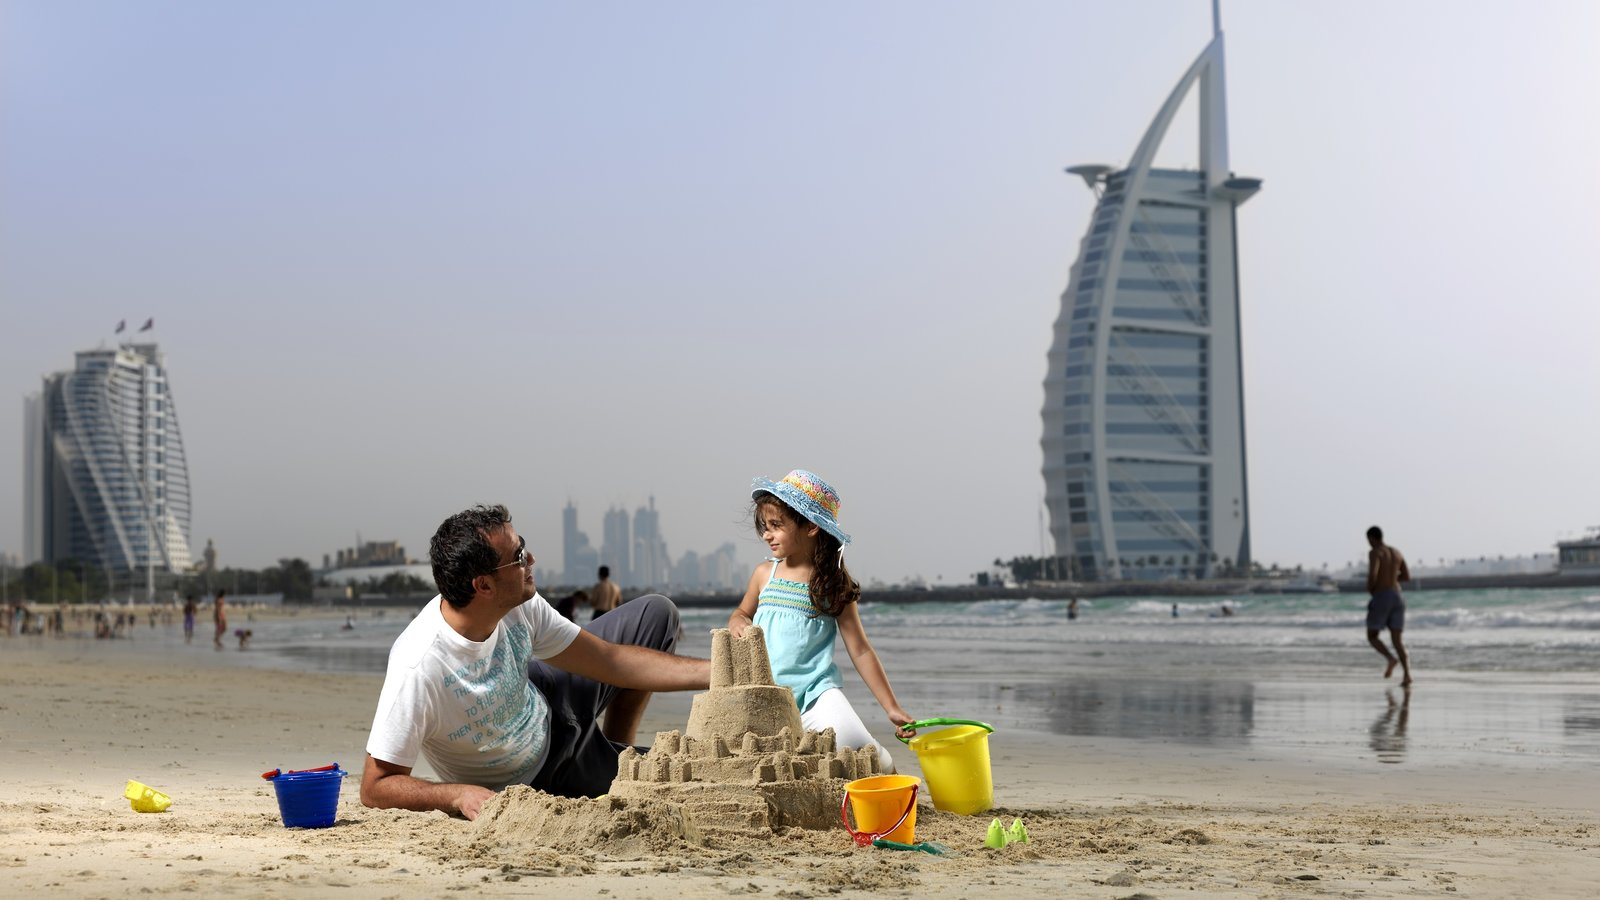 Jumeira Beach and Park featuring a beach as well as a small group of people